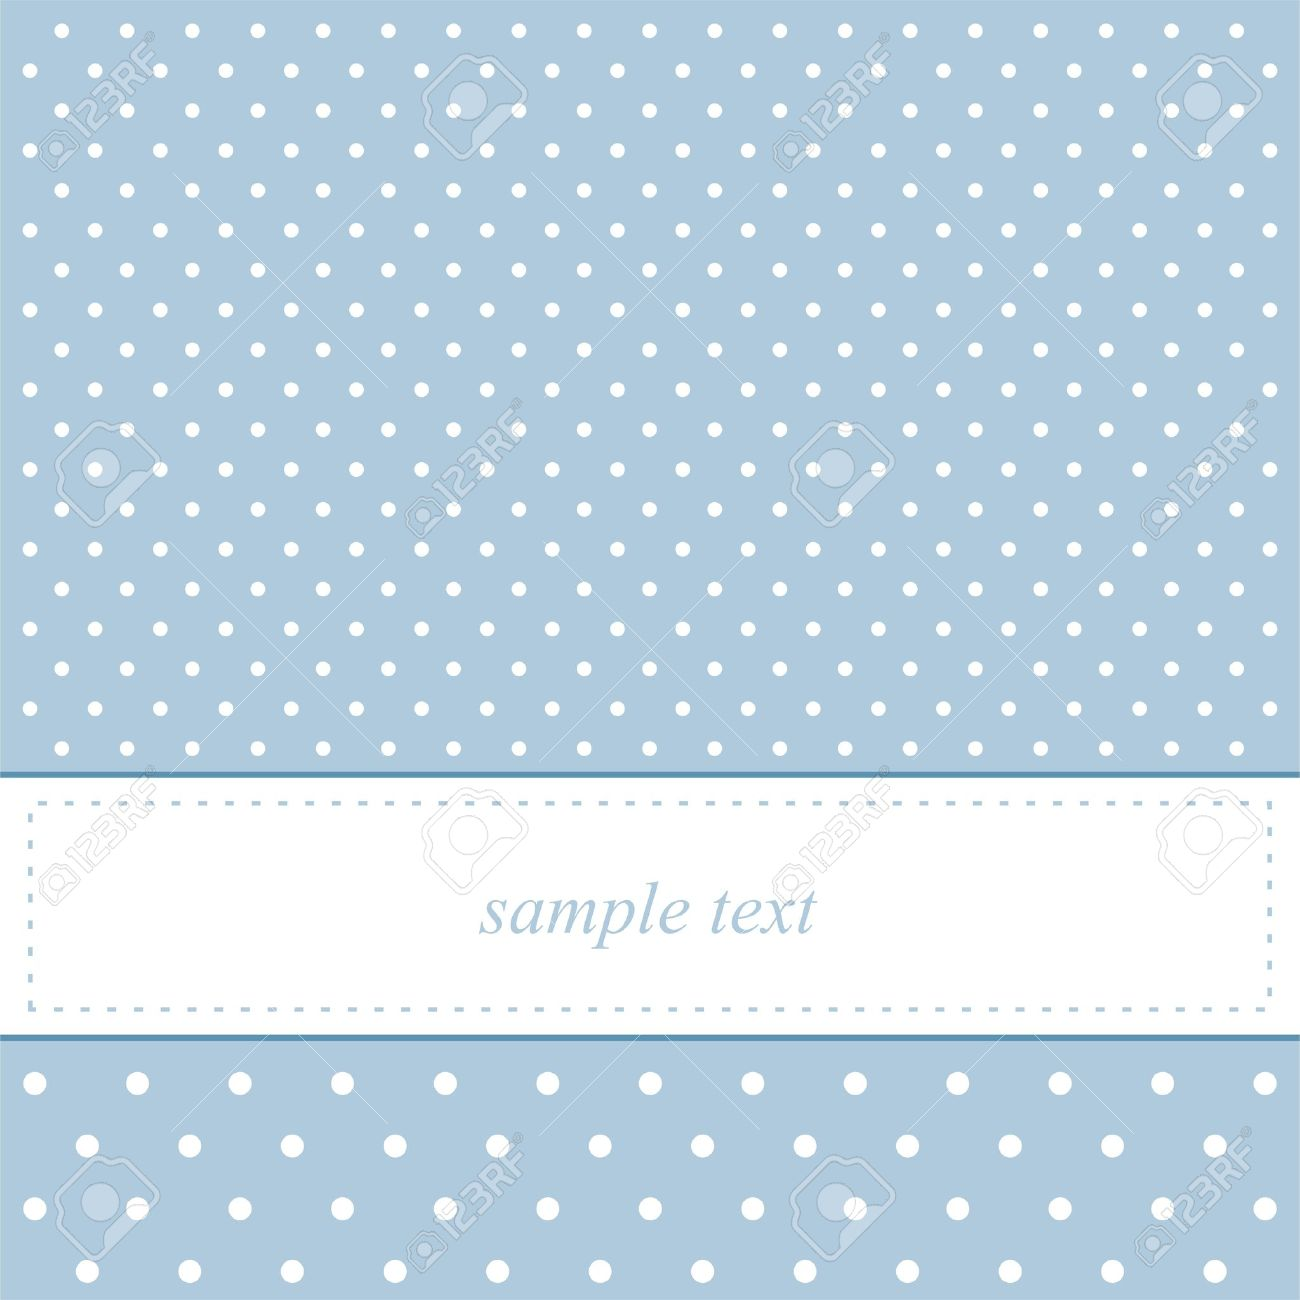 Sweet Blue Card Or Invitation Cute Background And Polka Dots White Space To